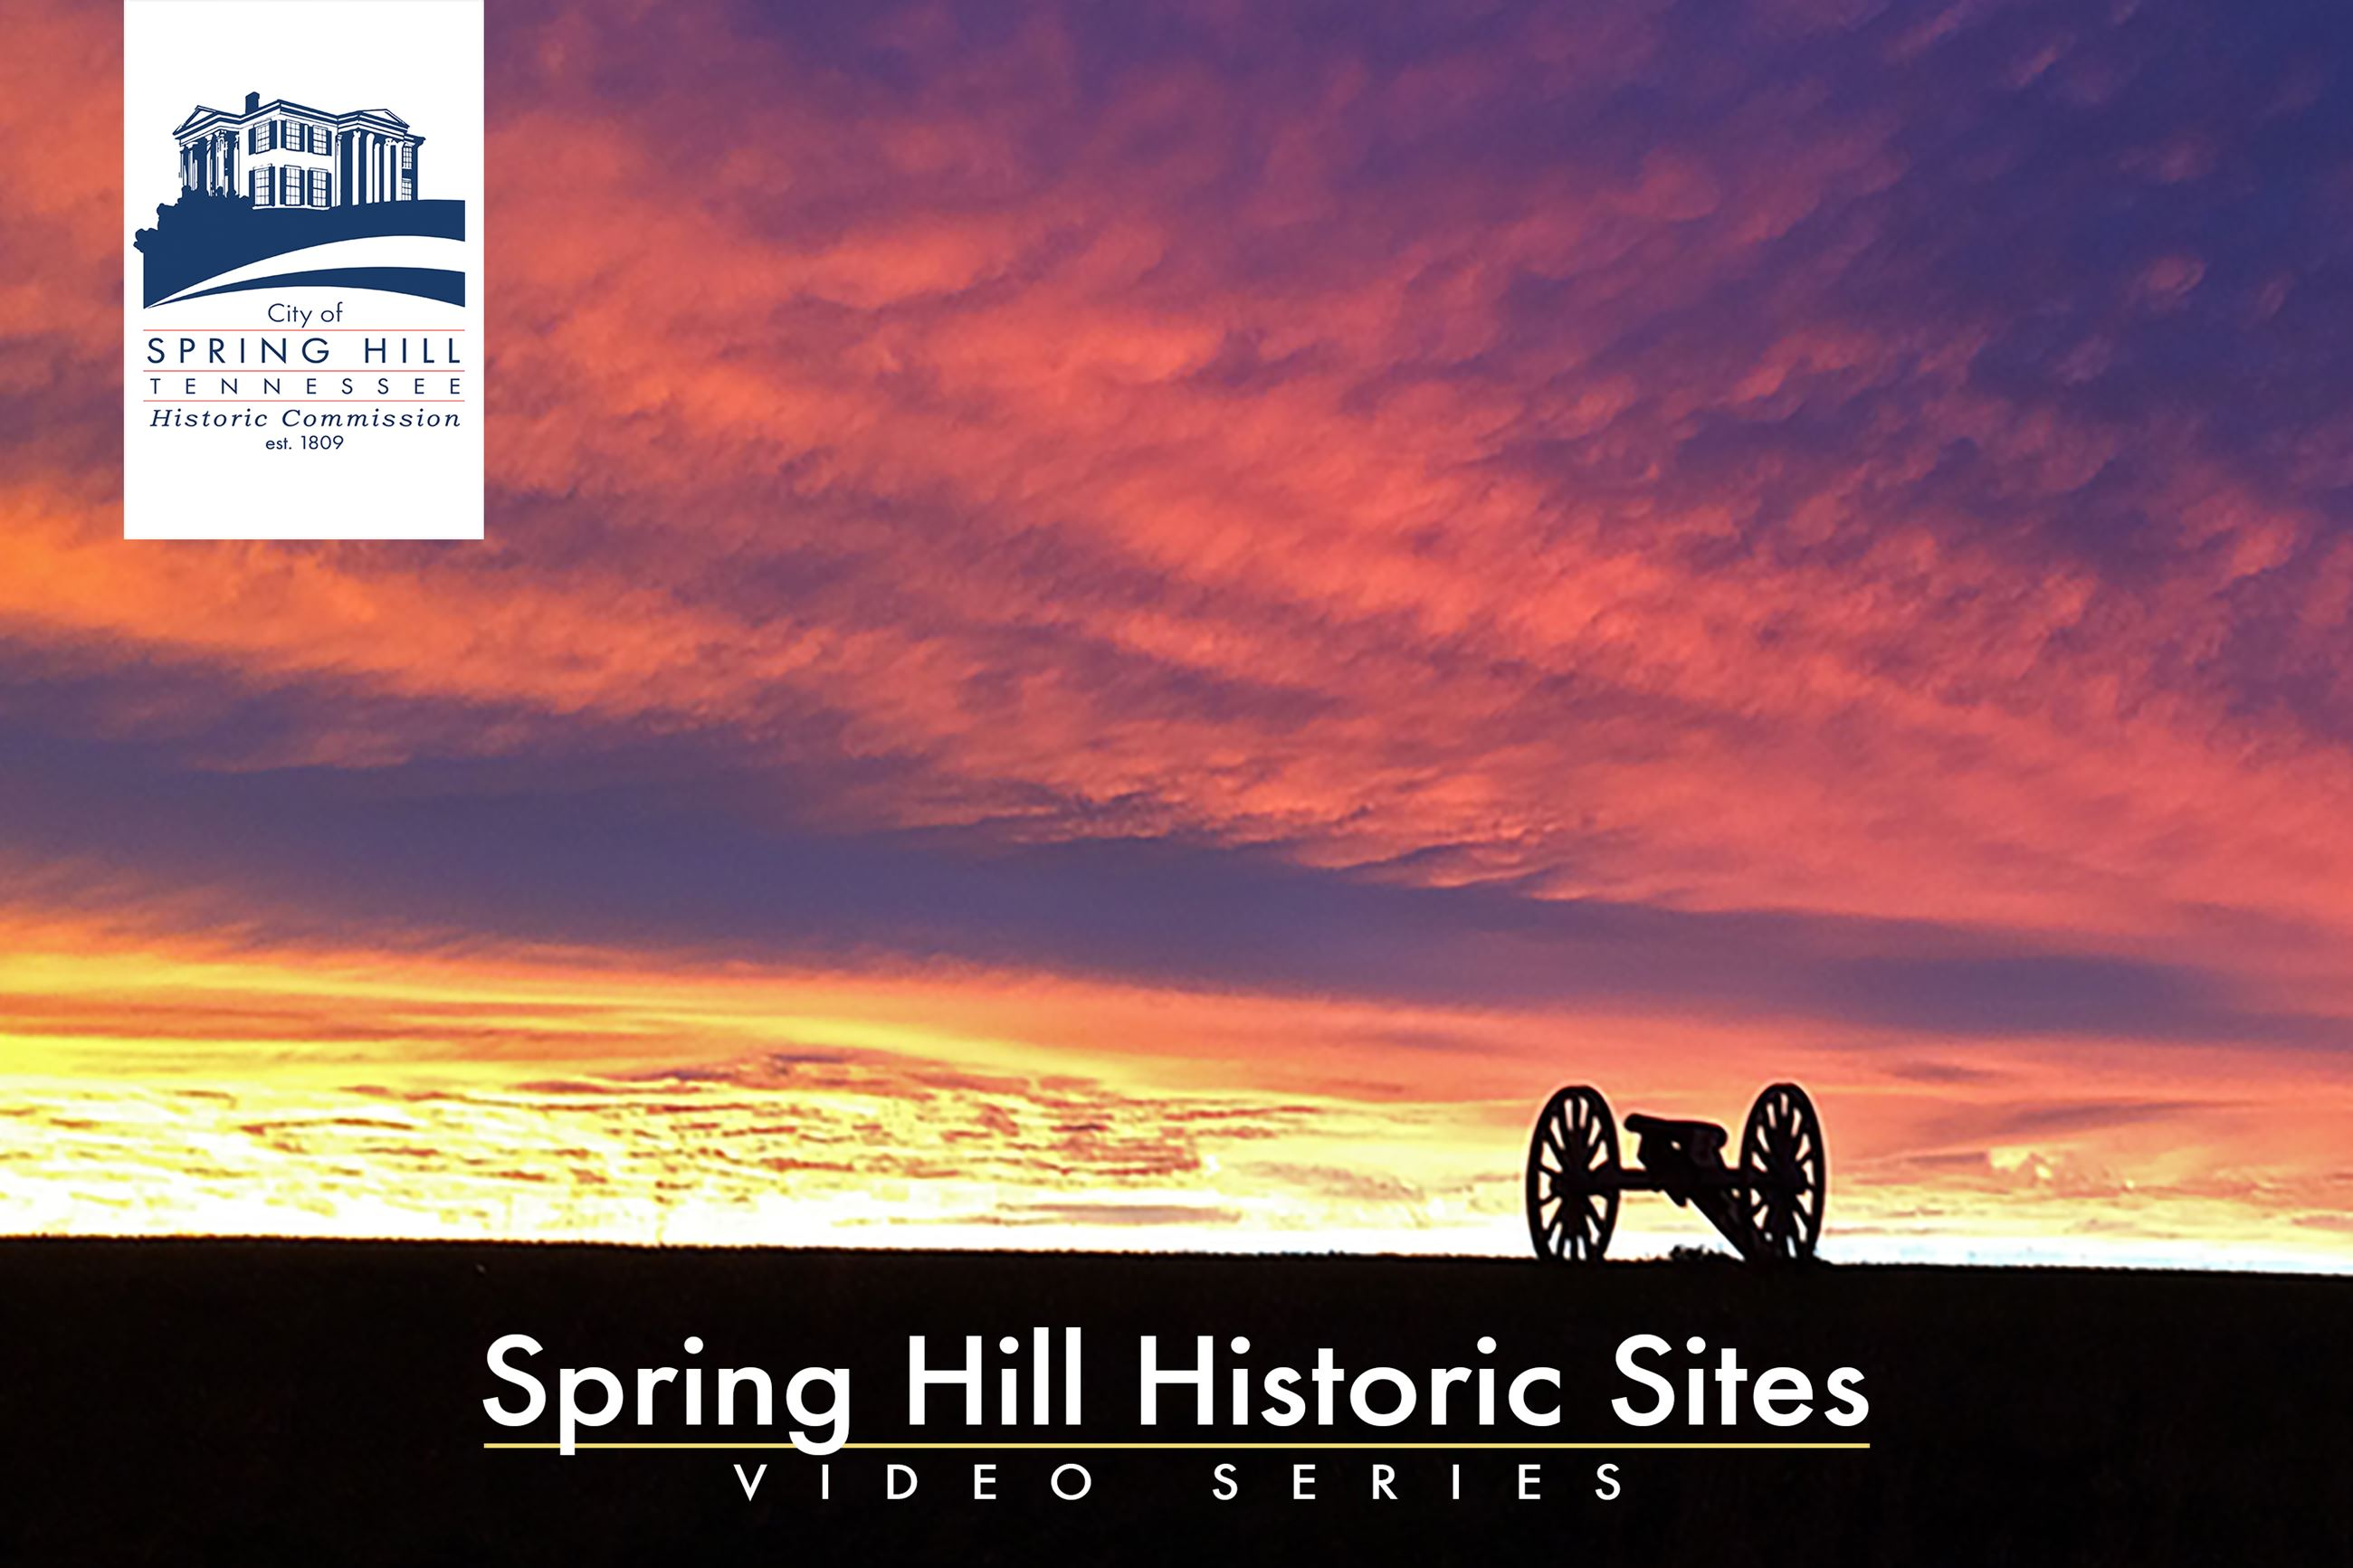 Spring Hill Historic Sites Video Series